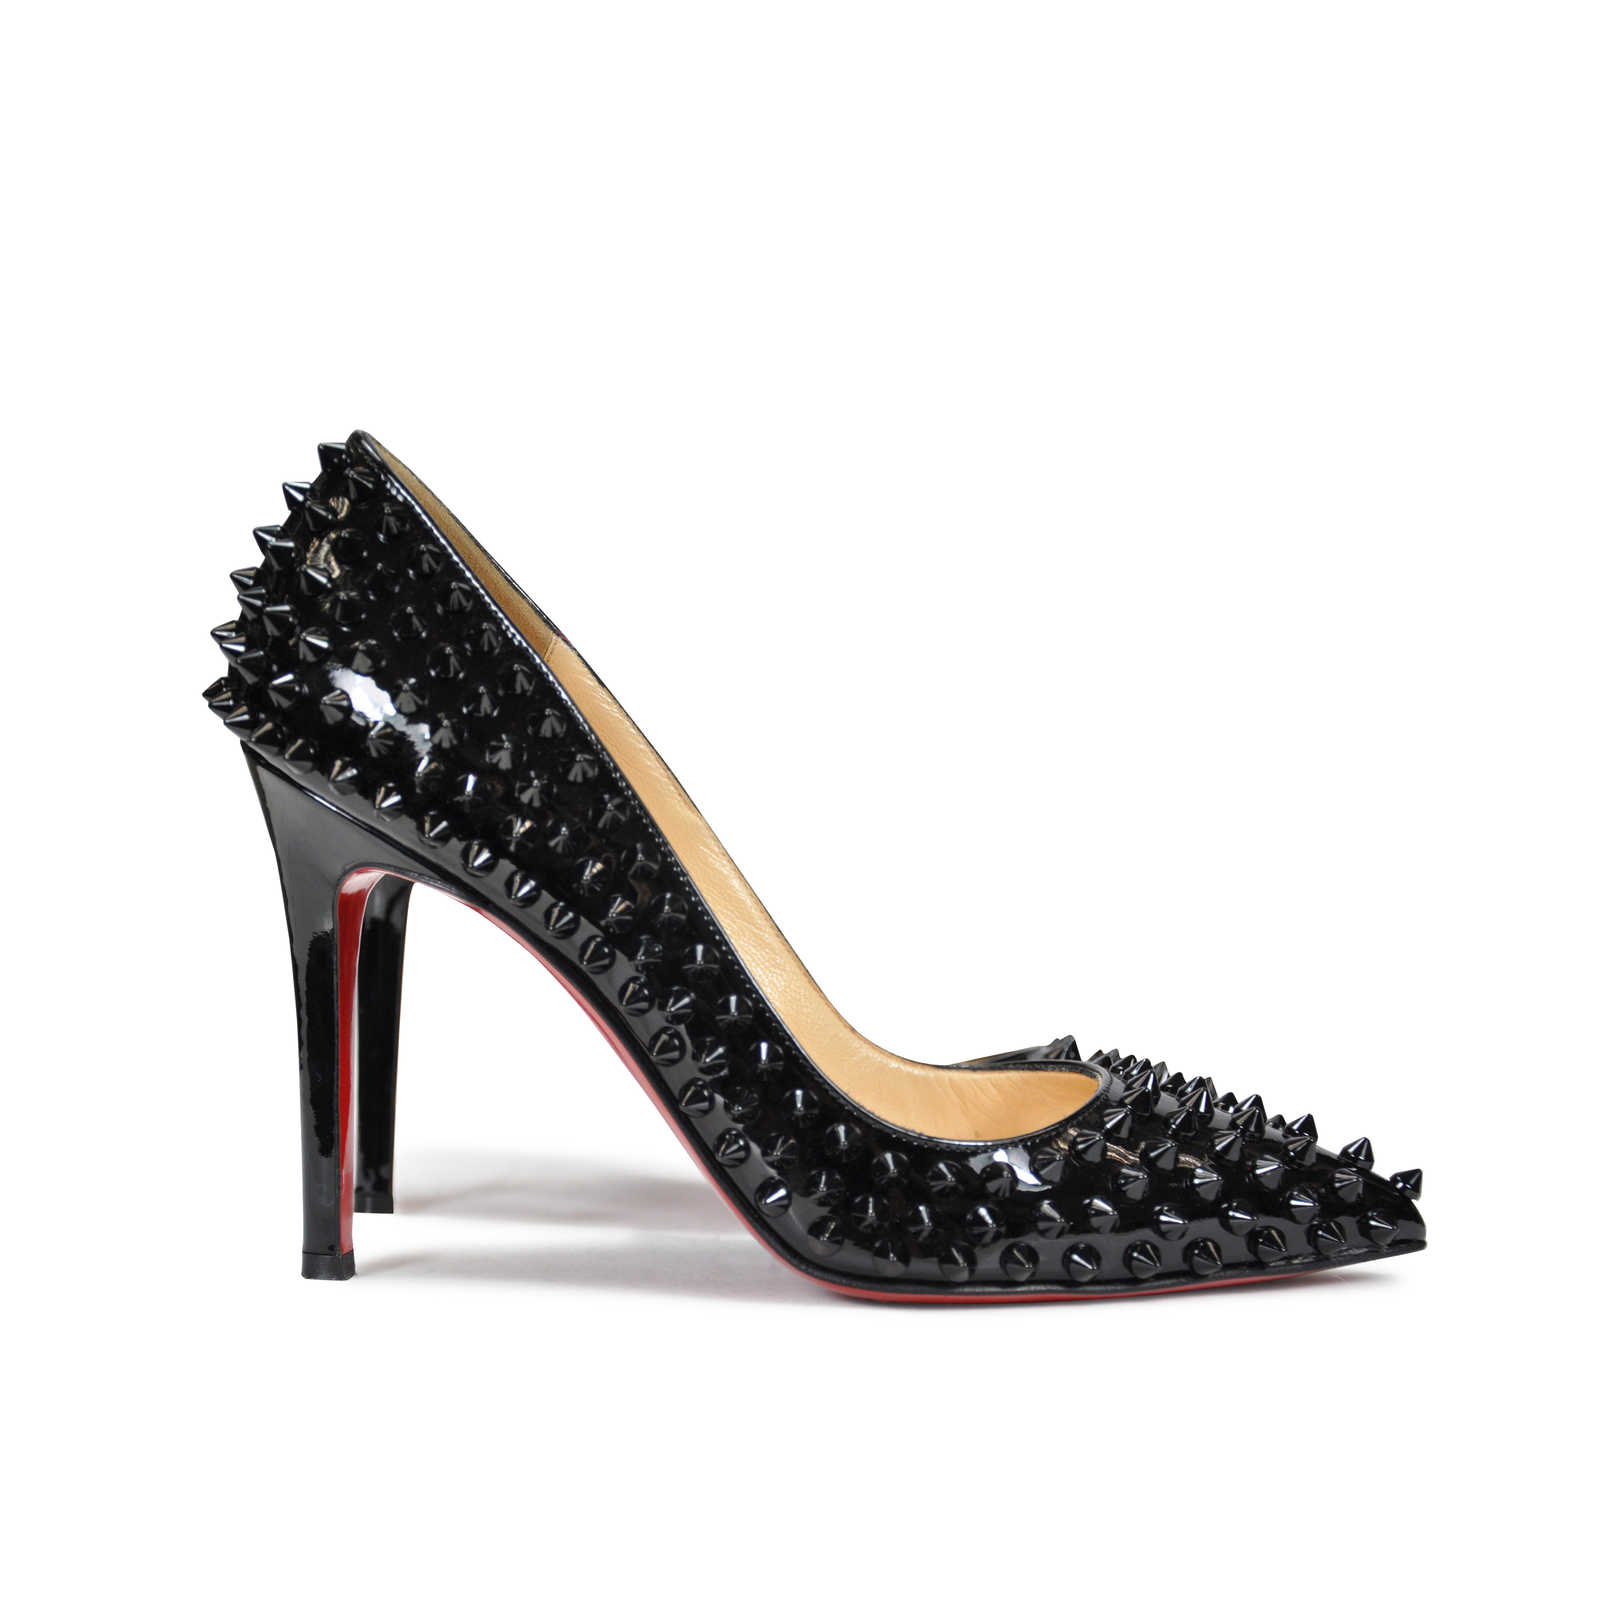 6a25a9a3ea49a ... Authentic Second Hand Christian Louboutin Pigalle Spike Pumps  (PSS-062-00003) -